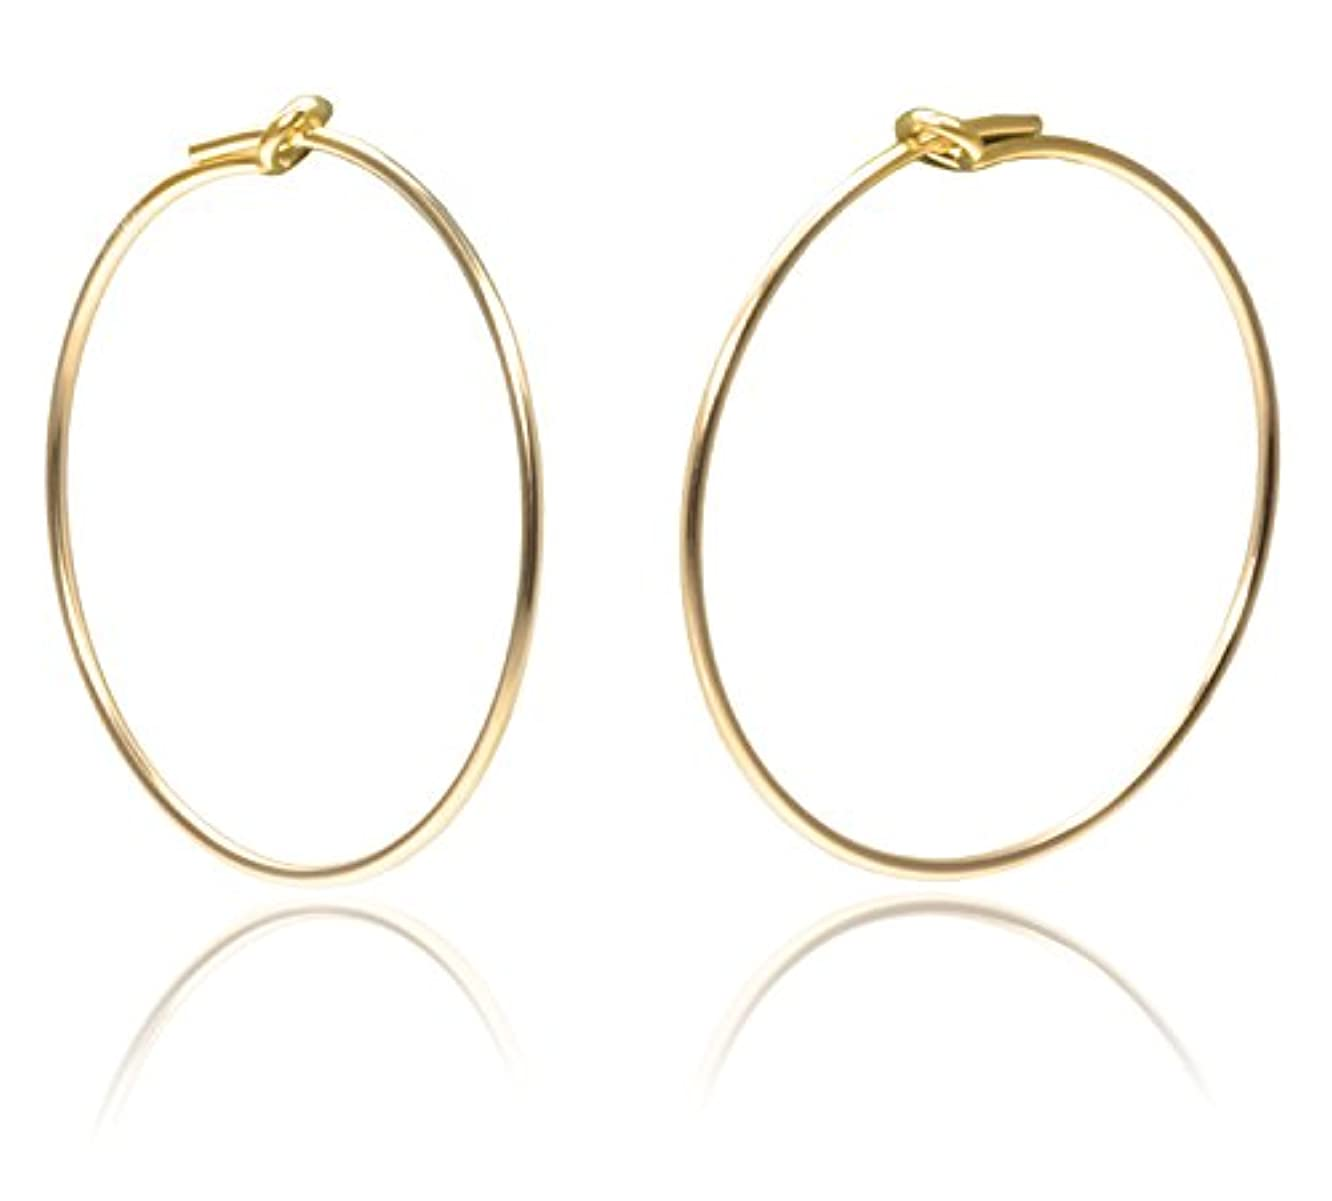 14K Gold Fill Beading Hoop 45mm Qty=2